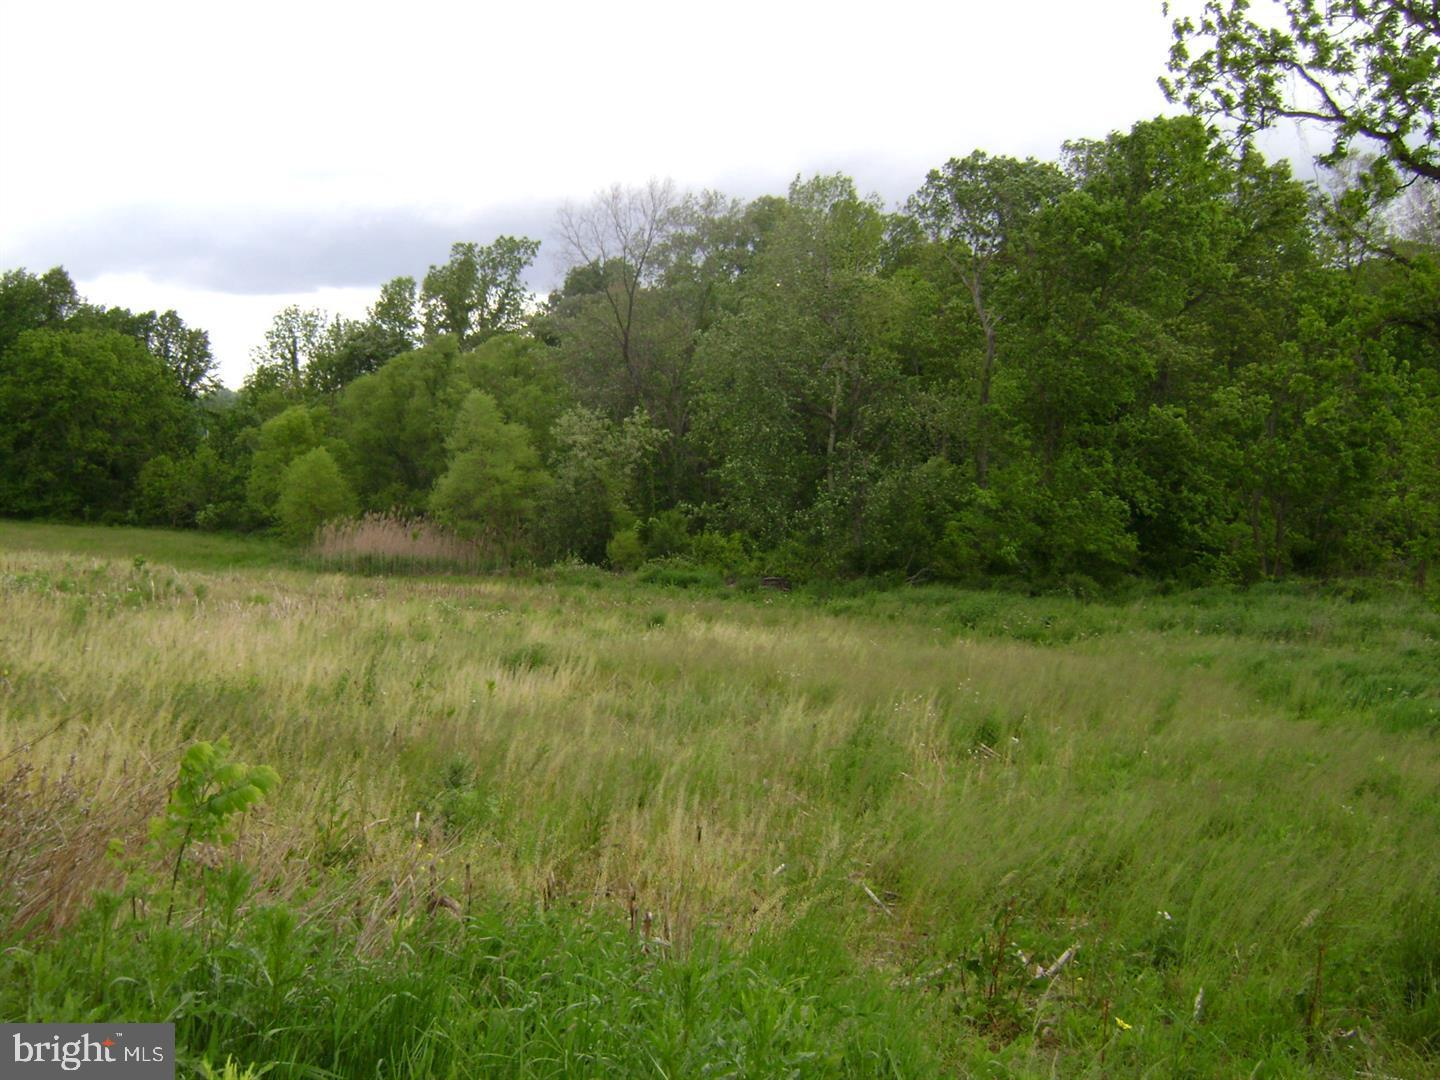 Land for Sale at Fawn Grove, Pennsylvania 17321 United States